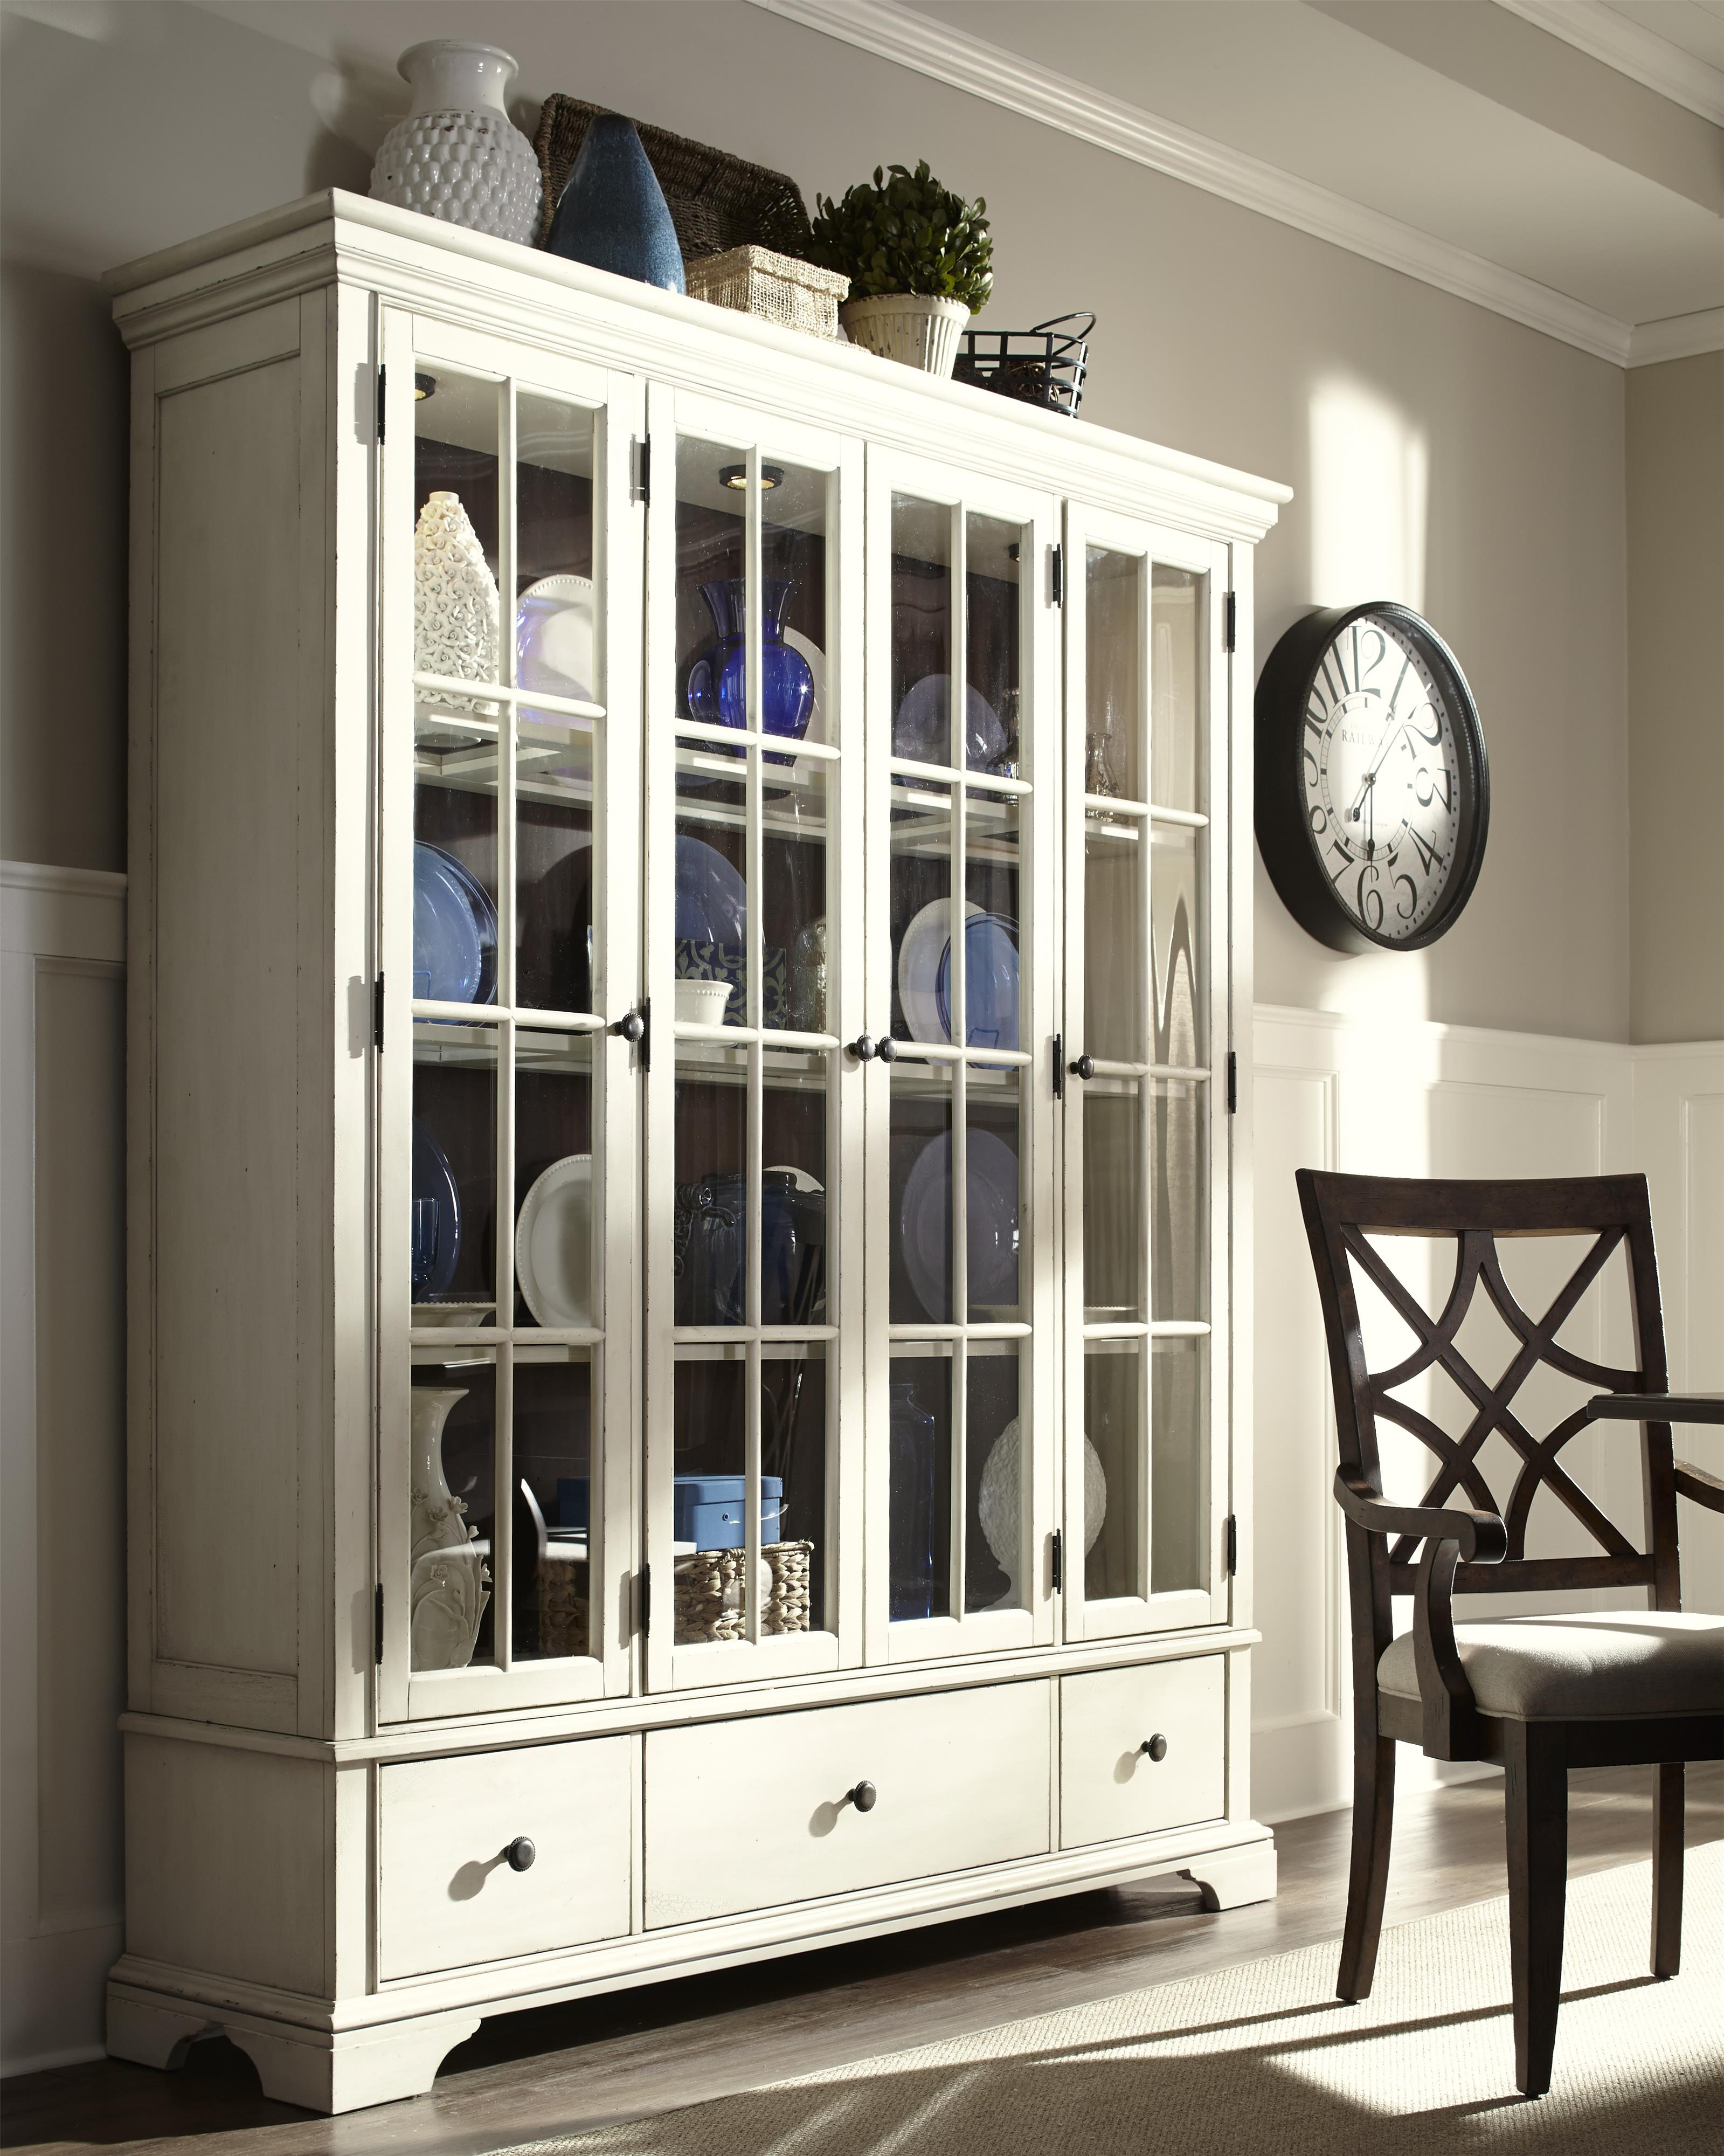 Monticello Curio Cabinet With Additional Drawer Storage And Paned